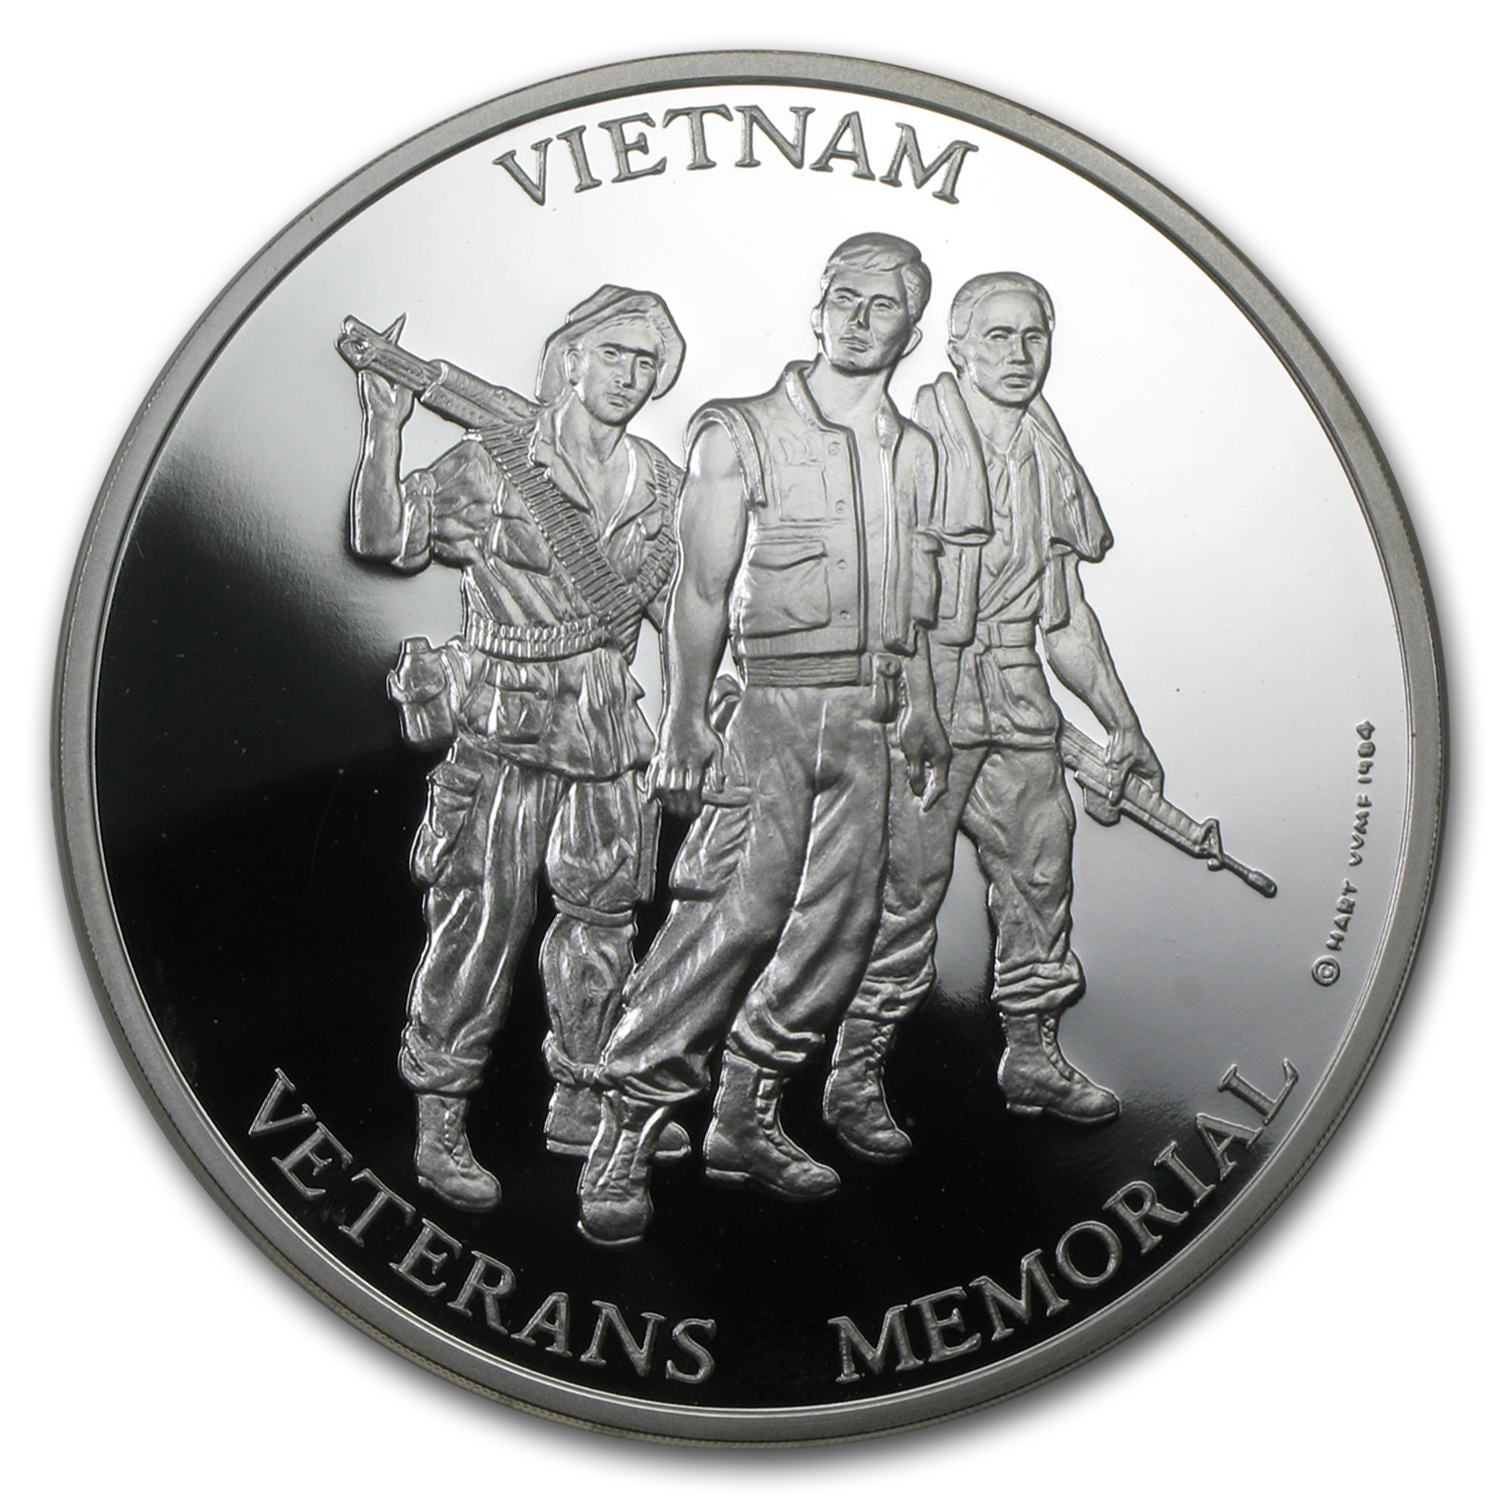 5 oz Silver Rounds - Vietnam Veterans Memorial Medal